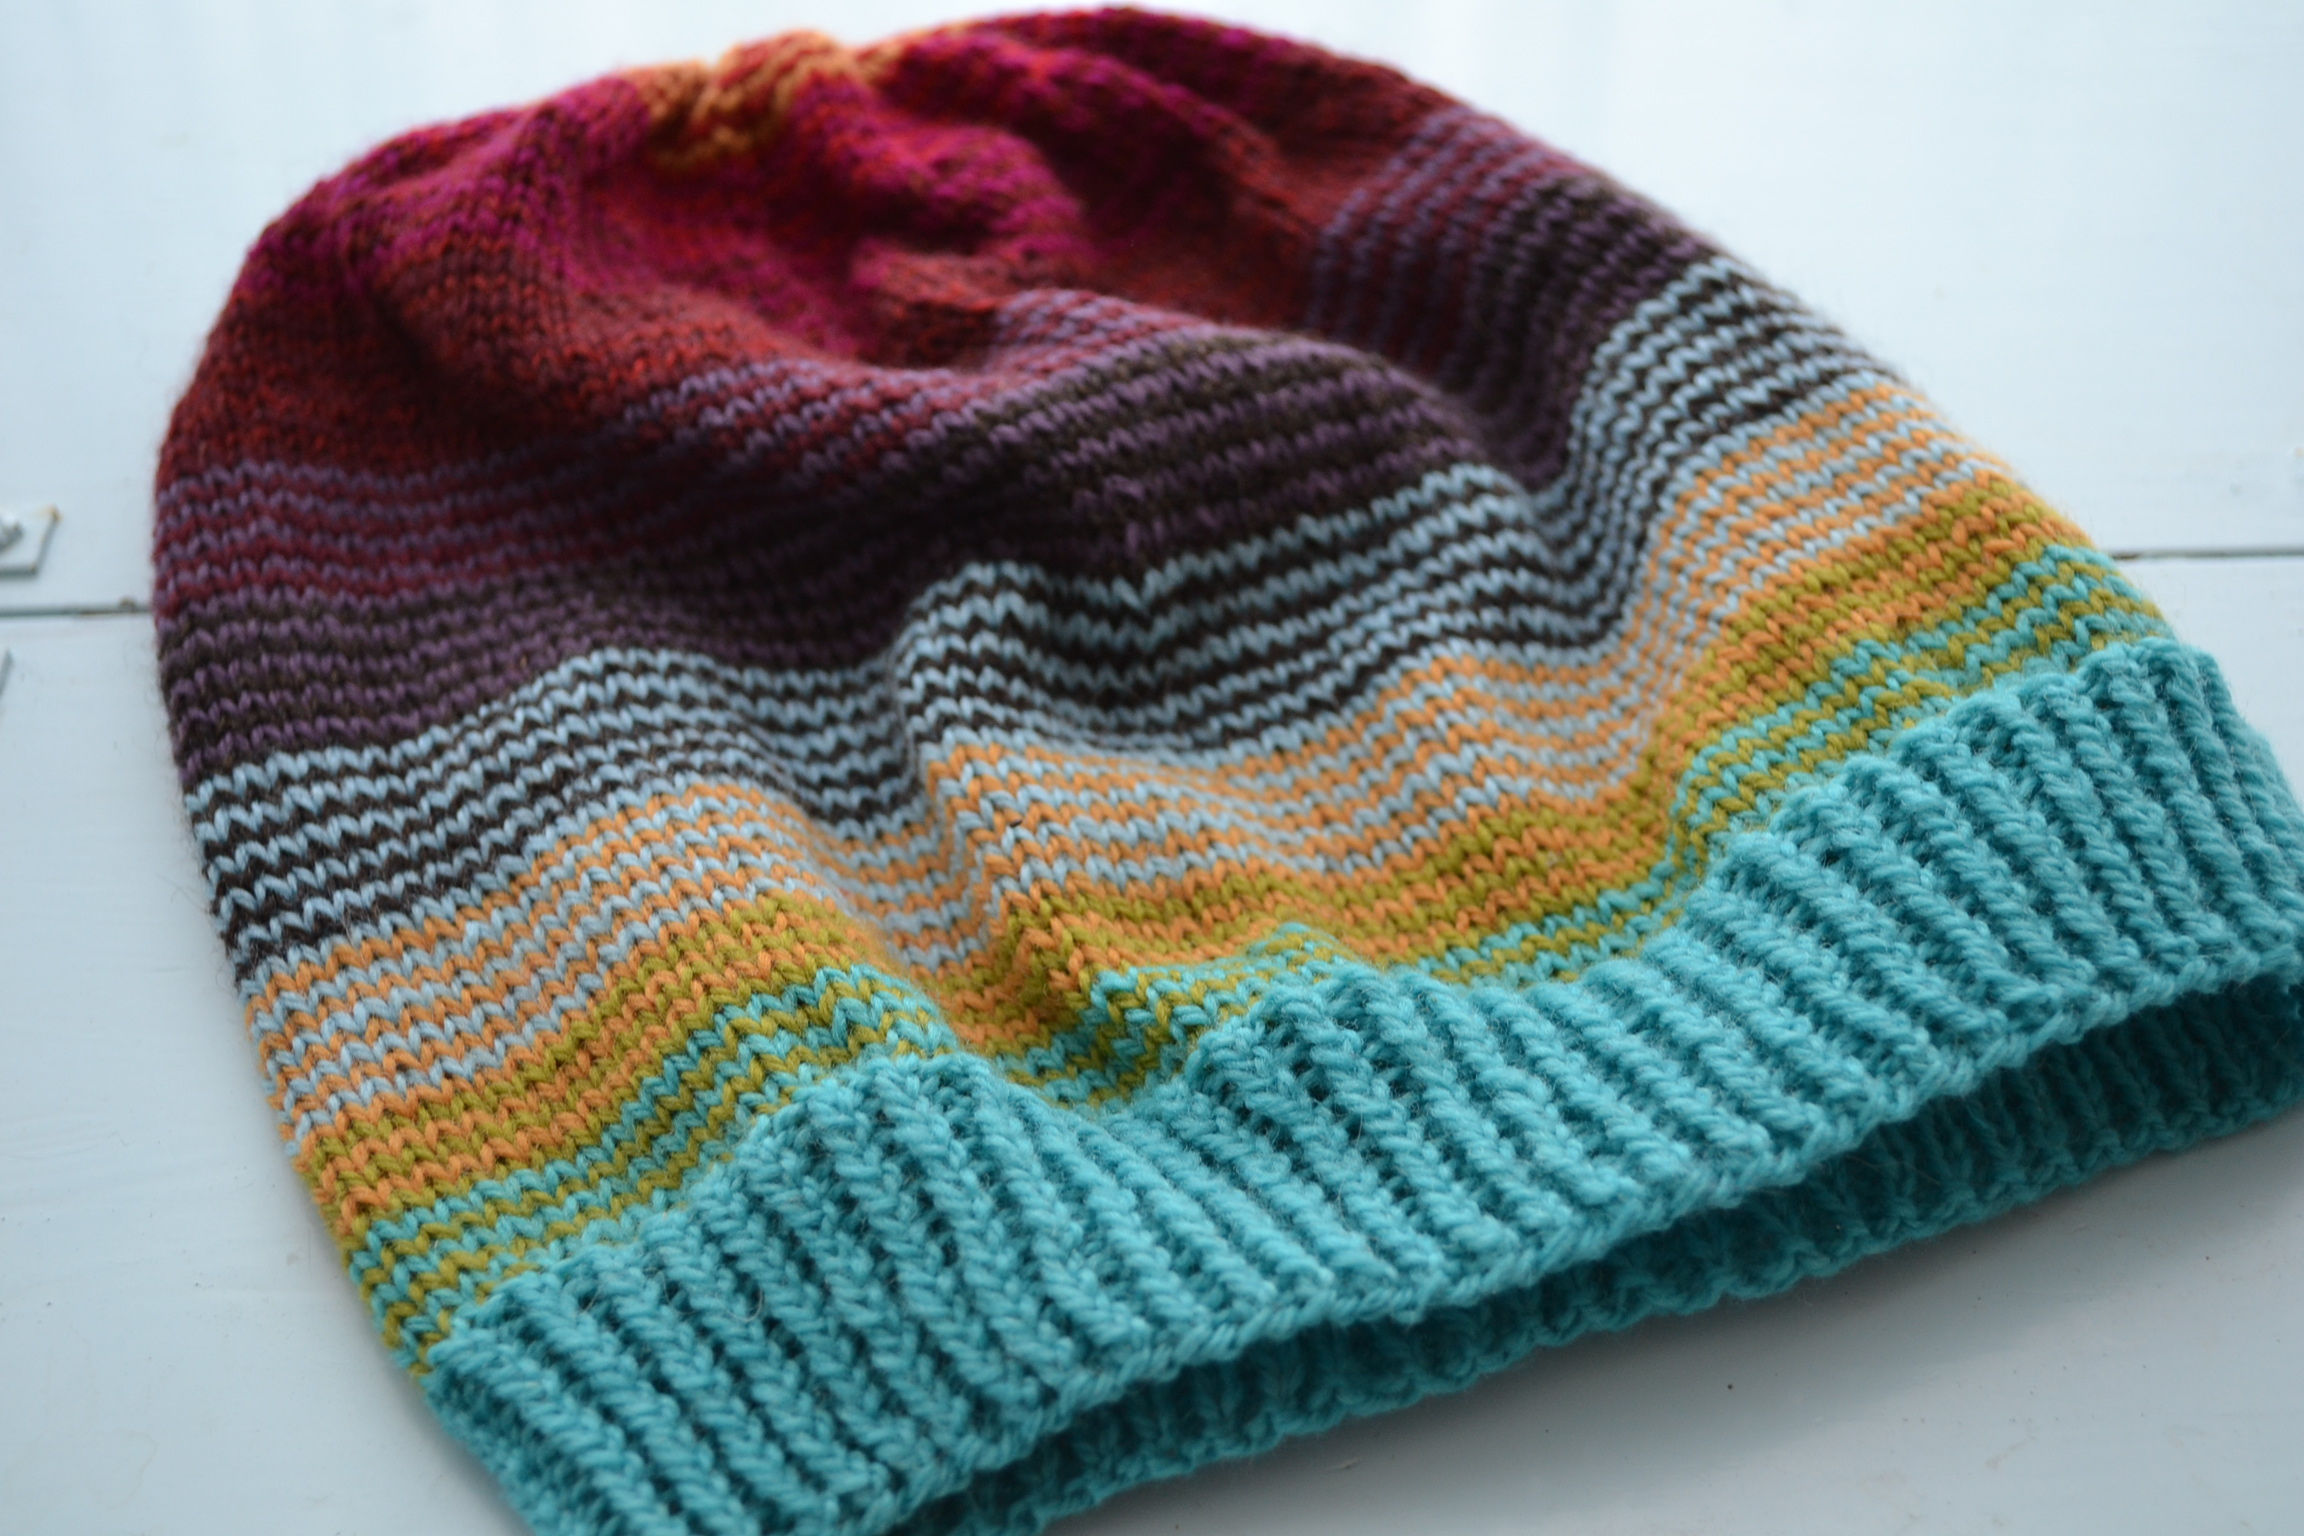 Knitting Patterns For Hats Using Sock Yarn : Sock Stashbuster Slouch Hat - aknitica